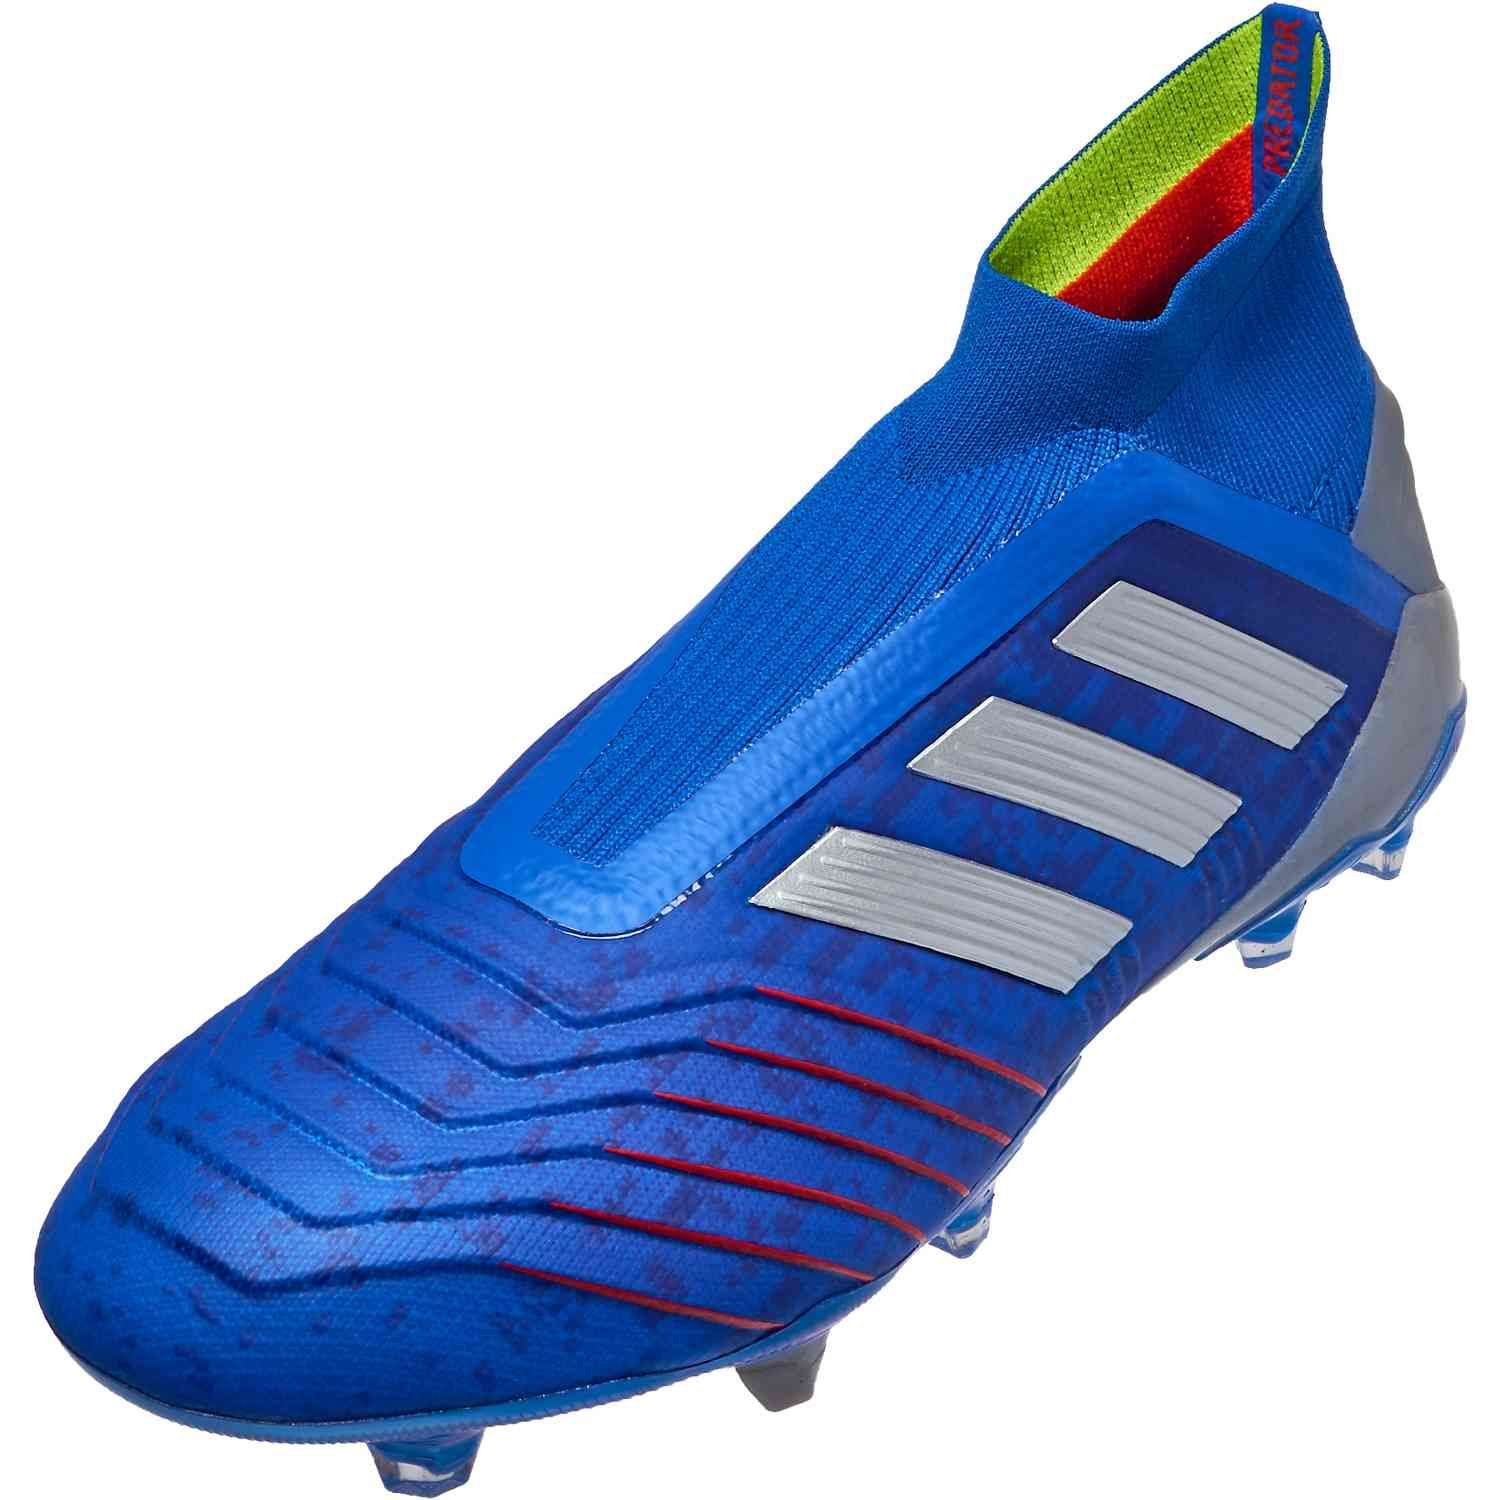 timeless design da6f5 d3604 The adidas Predator 19+ is at SoccerPro right now. Shop for your Exhibit  pack shoes here today.